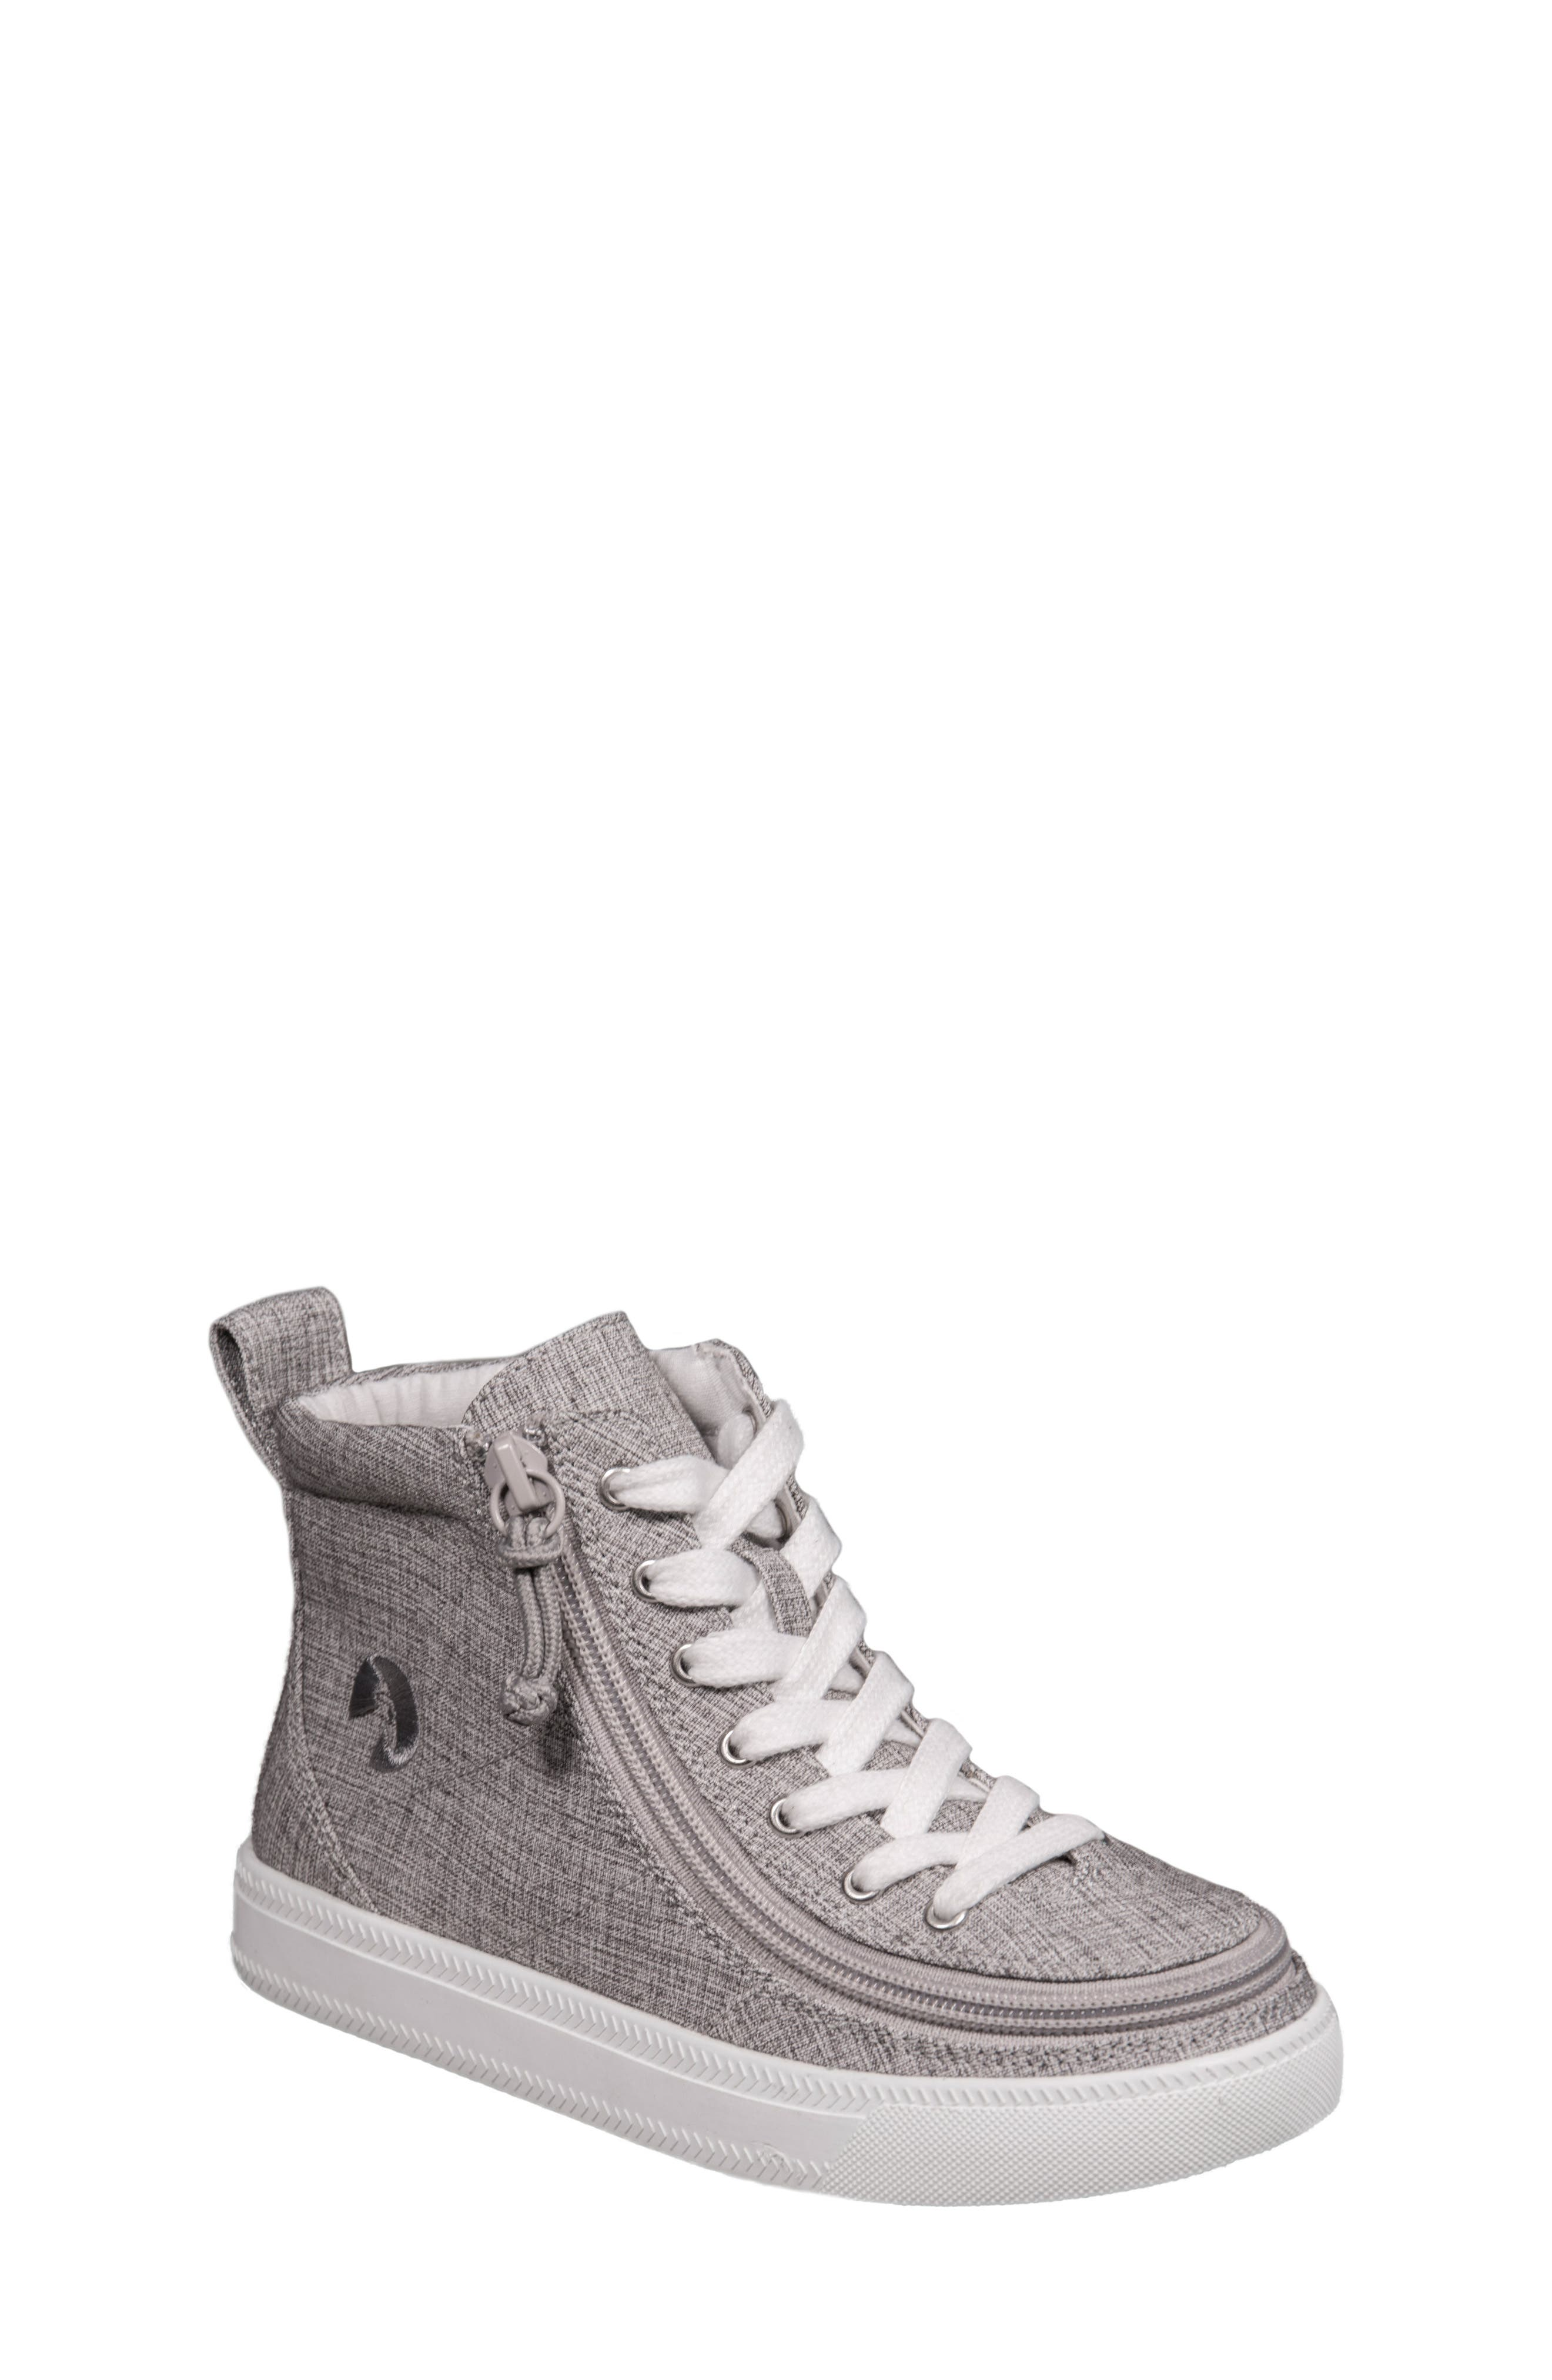 Zip Around High Top Sneaker,                             Main thumbnail 1, color,                             Grey Jersey